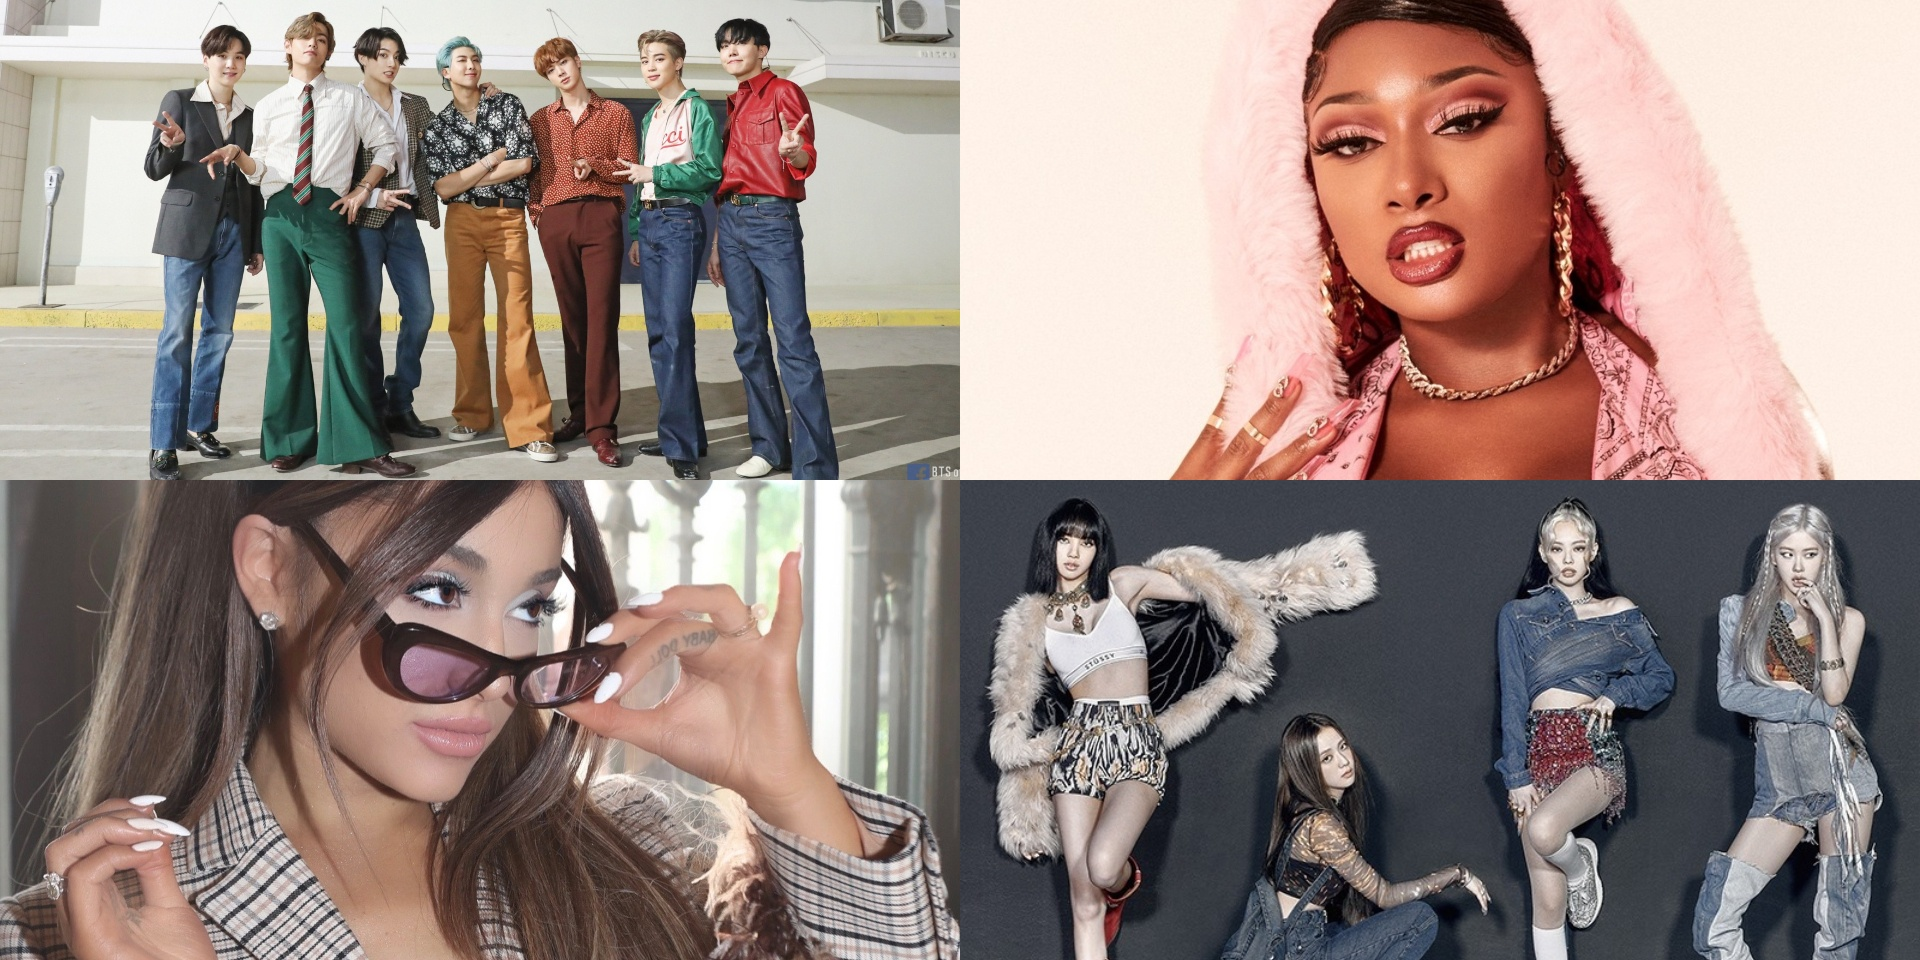 BTS, BLACKPINK, Megan Thee Stallion, Ariana Grande, and more nominated for the 2020 E! People's Choice Awards